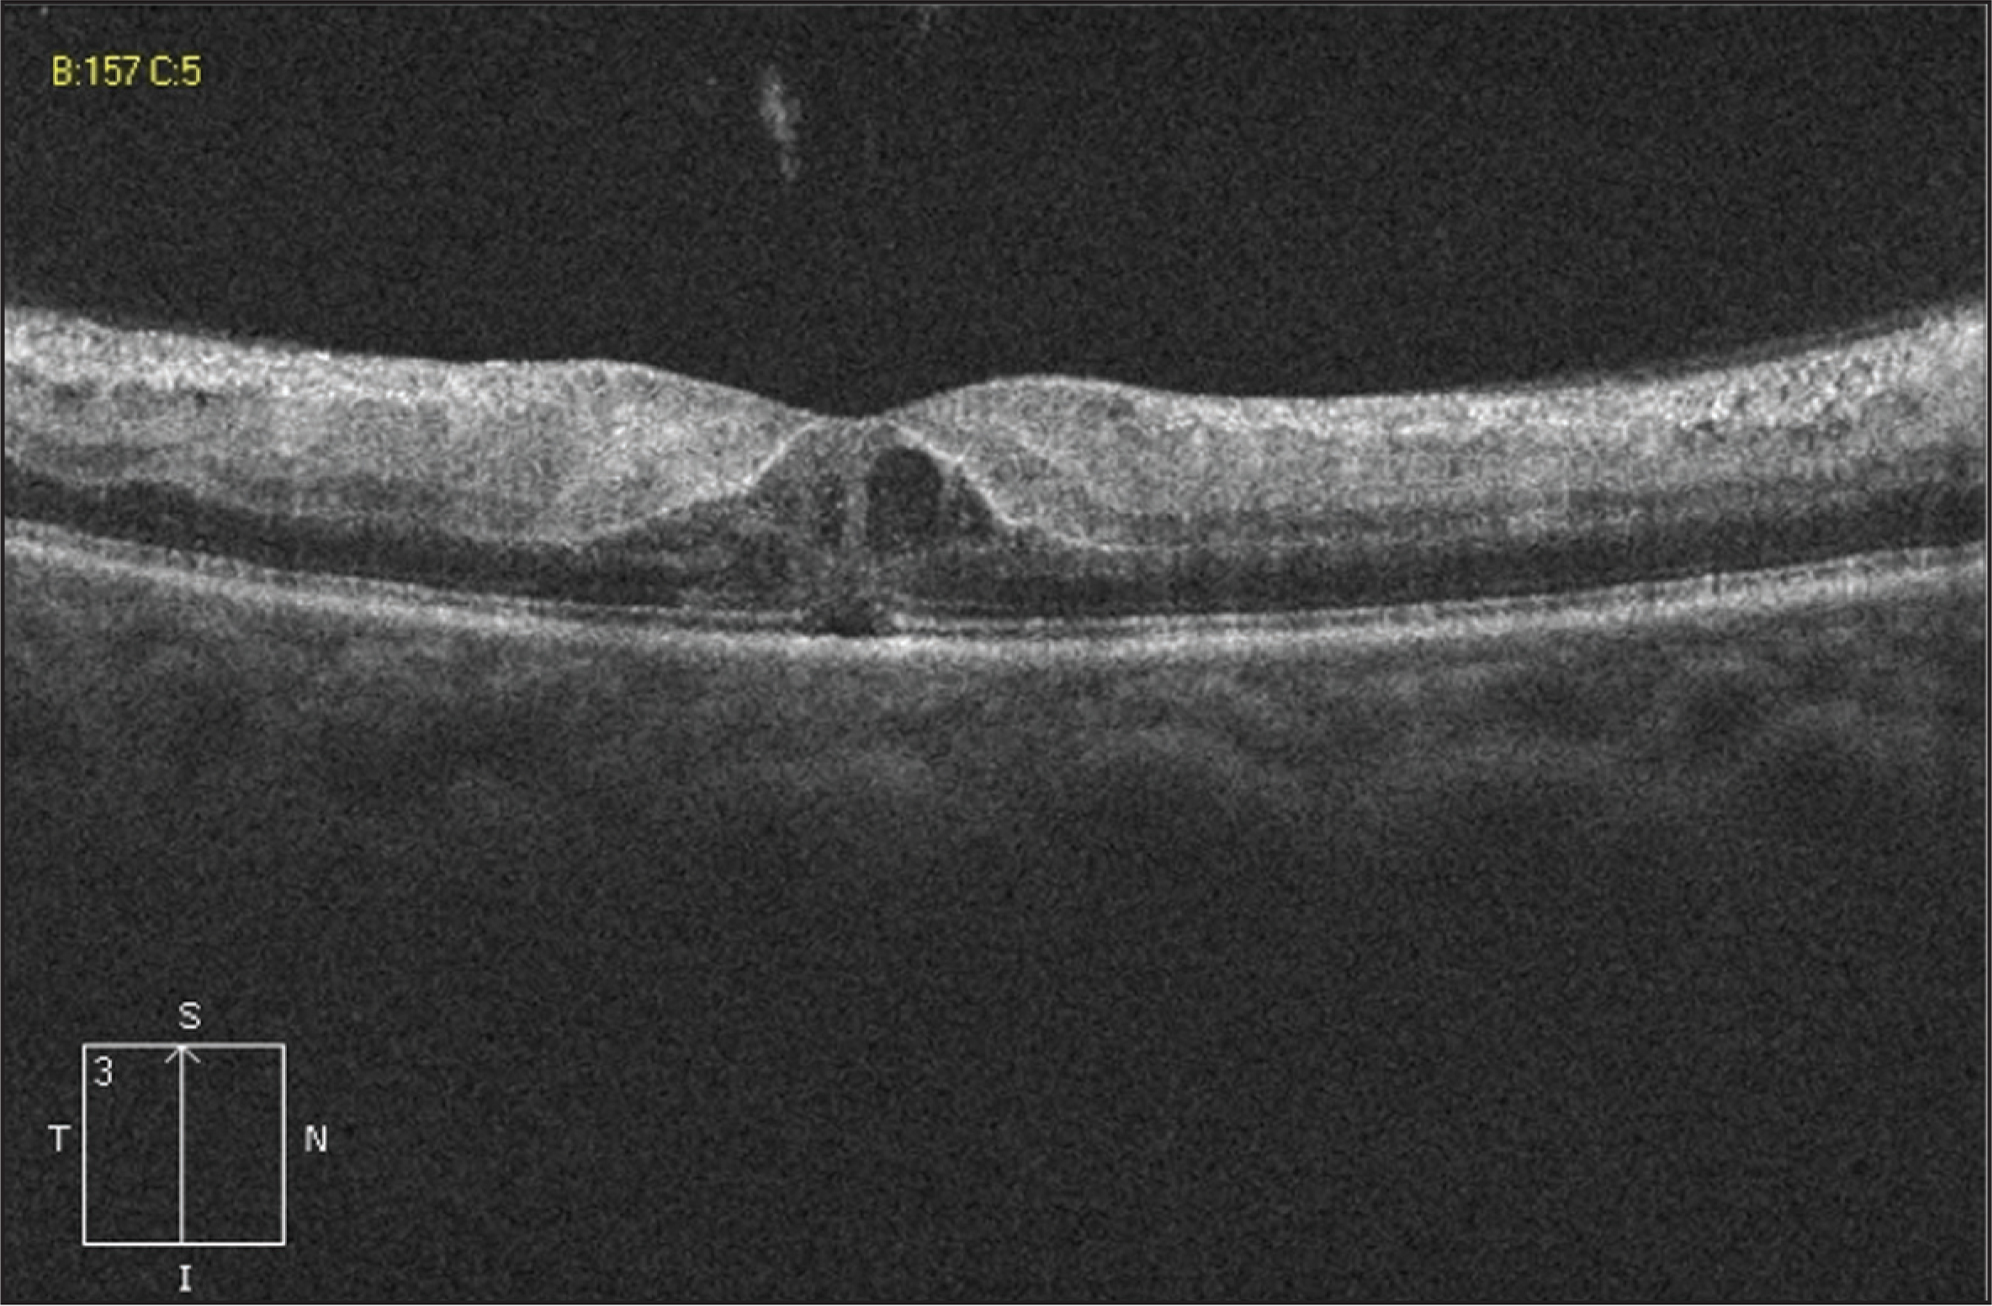 Optical coherence tomography of the right eye during the fourth postoperative day shows macular edema, characterized by hyperreflectivity of the inner retinal layers, subfoveal retinal detachment, and foveal cysts at the level of the outer nuclear layer.